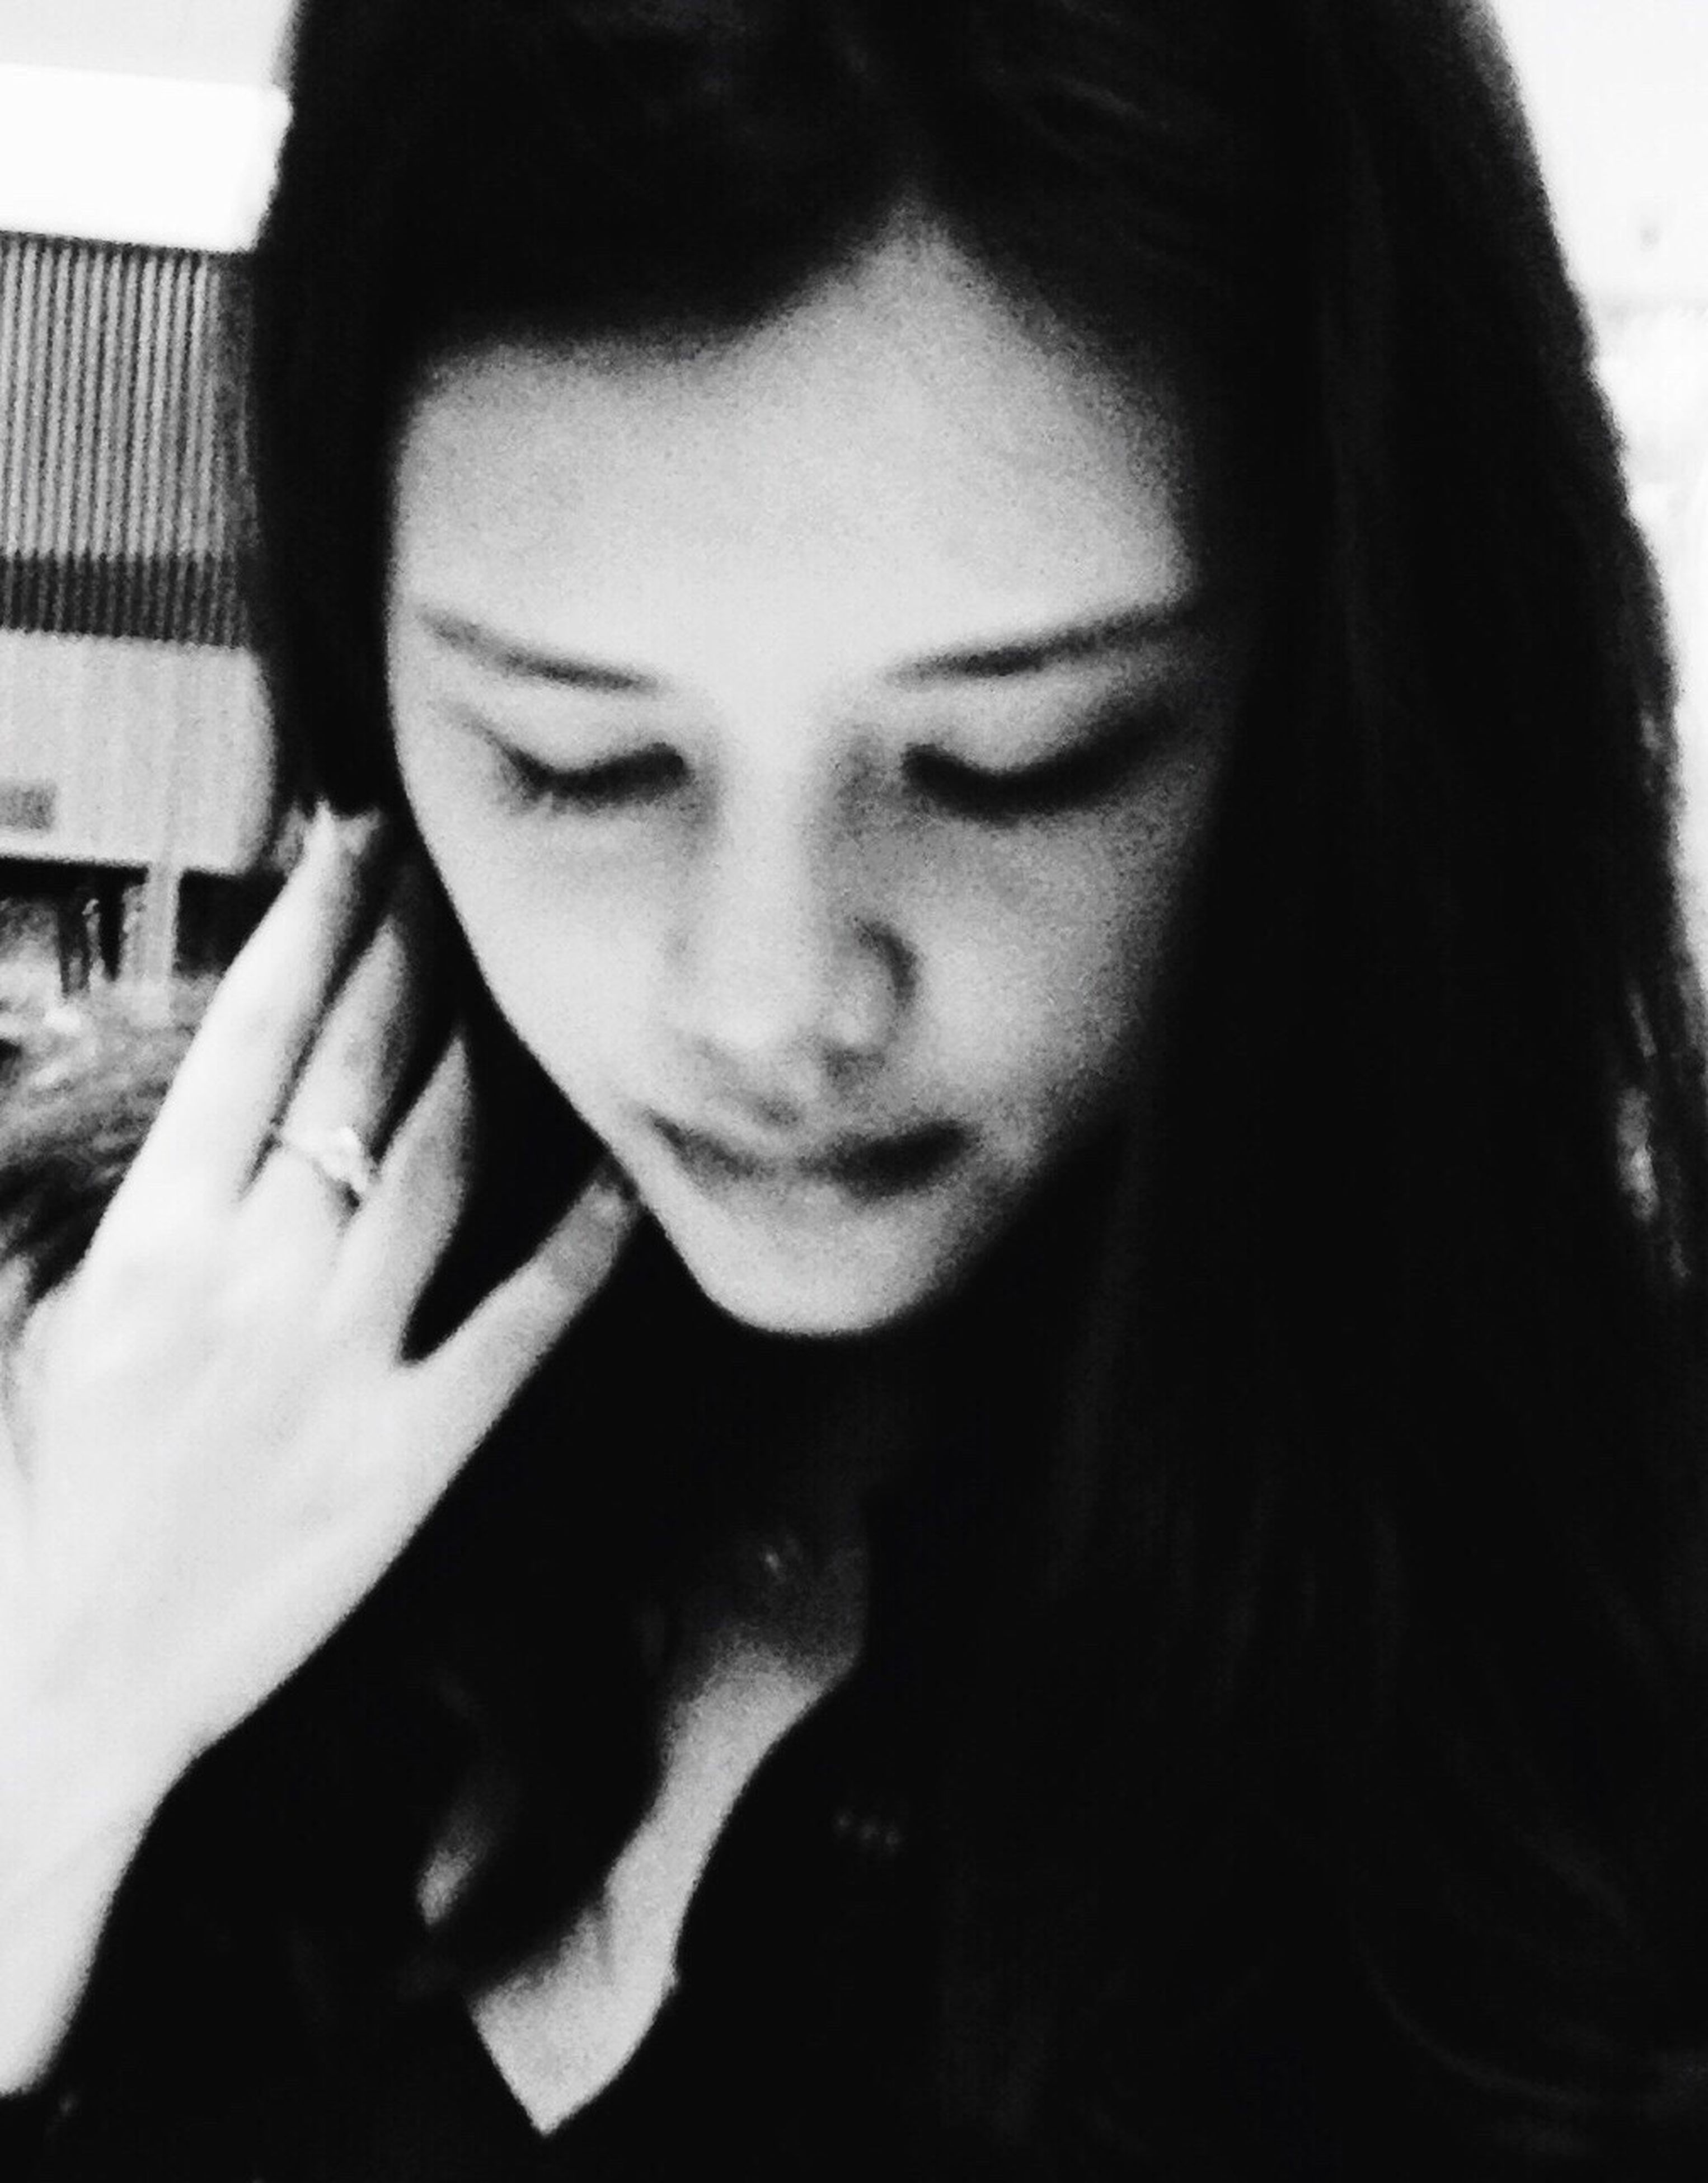 young adult, headshot, young women, indoors, person, looking down, close-up, front view, casual clothing, long hair, contemplation, human face, focus on foreground